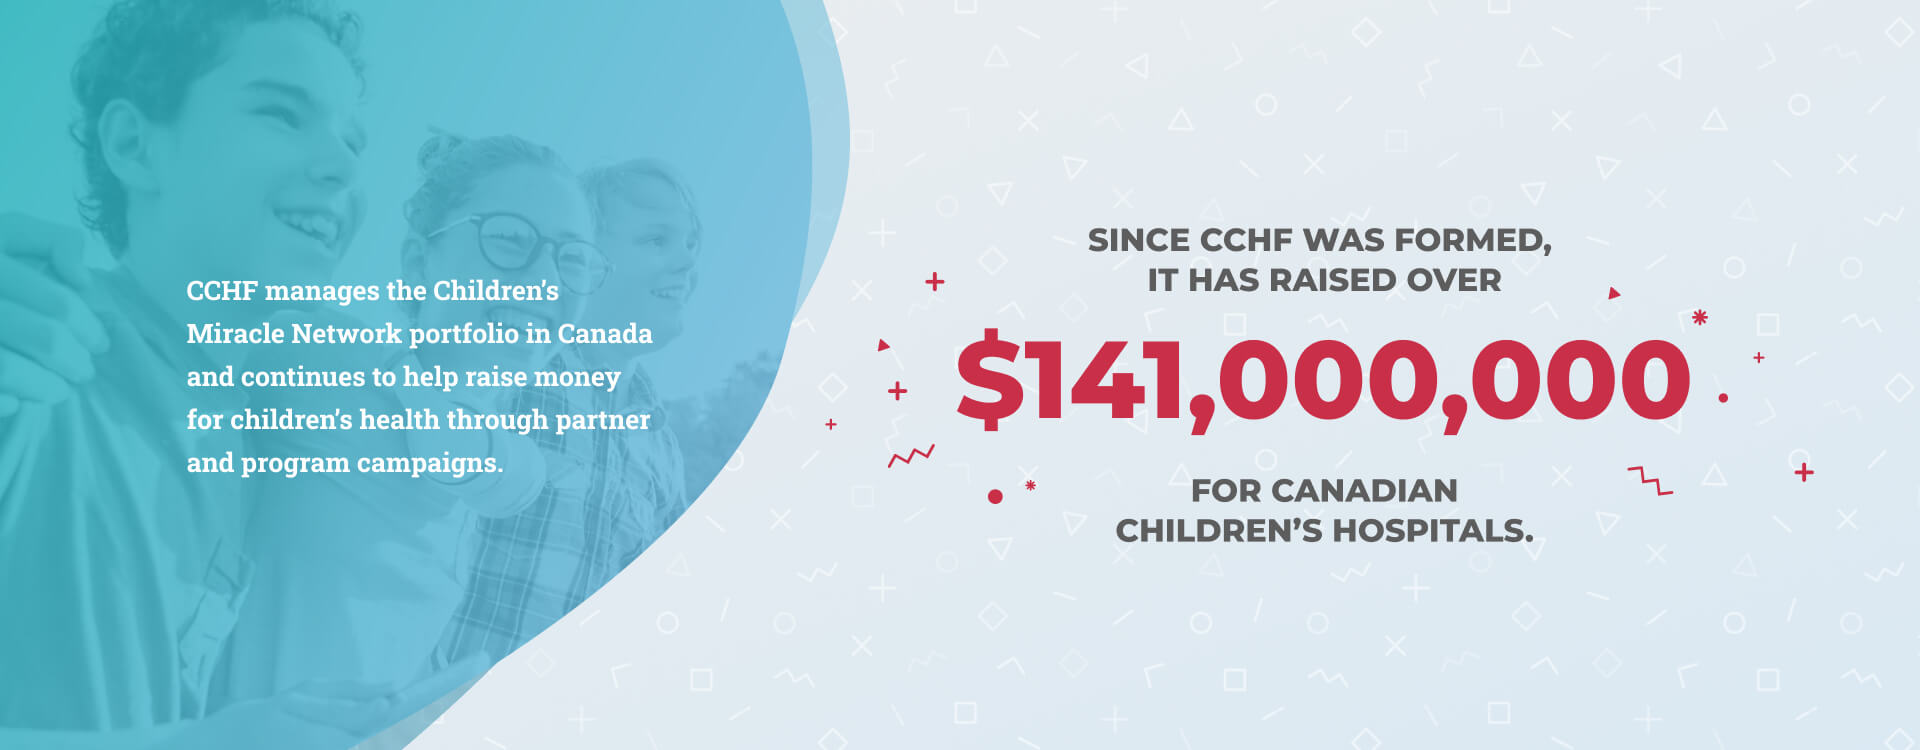 Slide 5 - CCHF manages the Children's Miracle Network portfolio in Canada and continues to help raise money for children's health through partner and program campaigns. Since CCHF was formed, it has raised over $141,000,000 for Canadian children's hospitals.